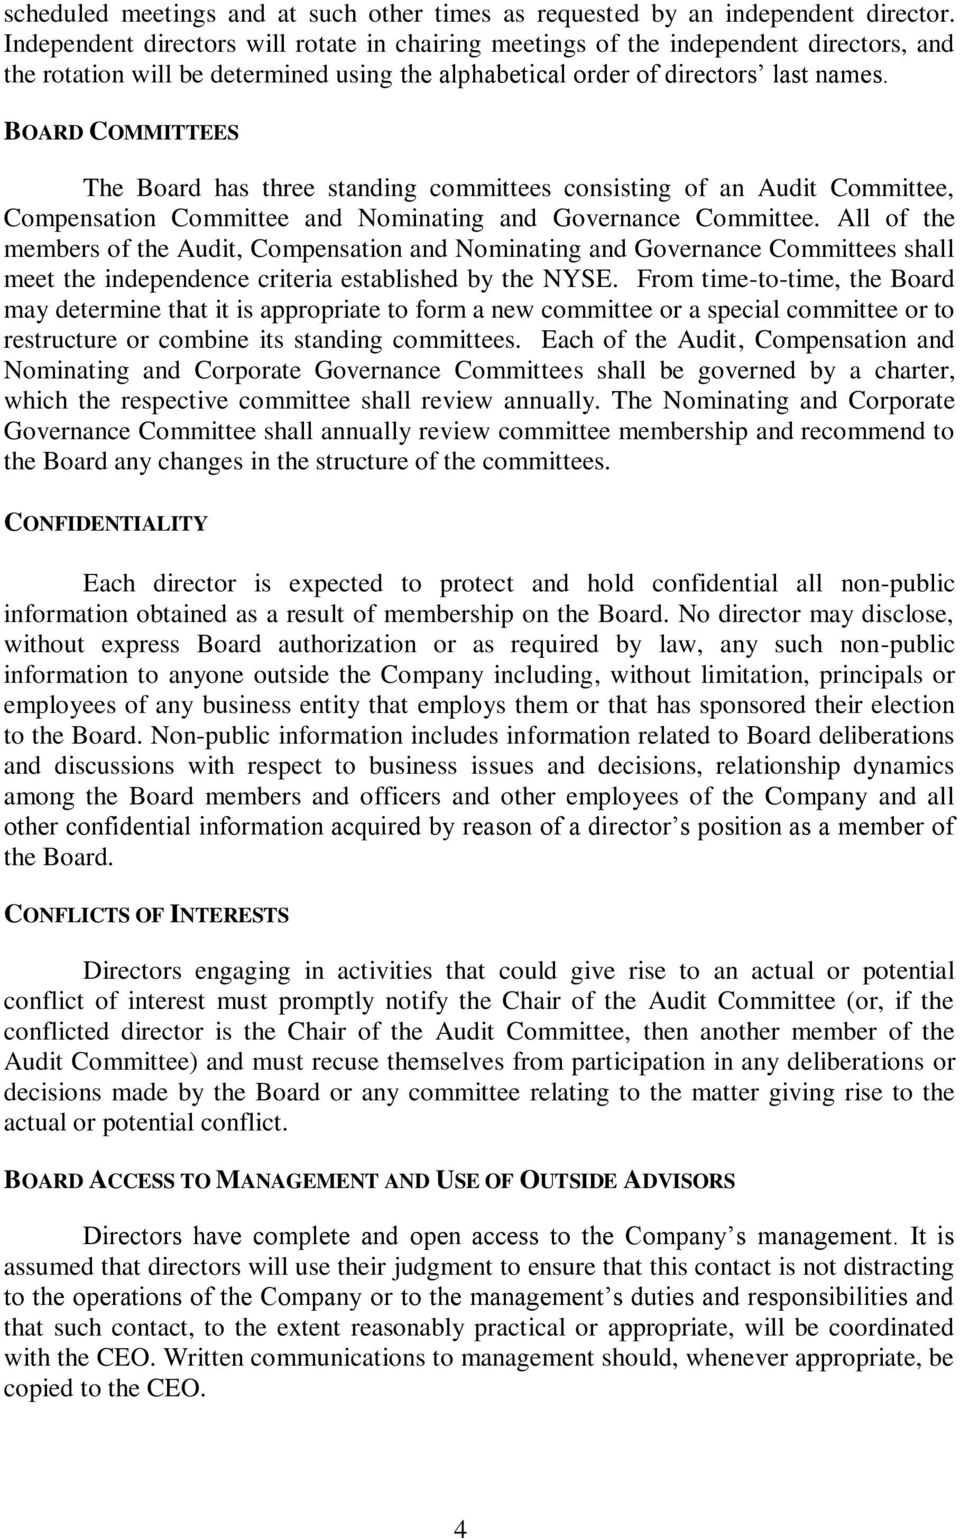 BOARD COMMITTEES The Board has three standing committees consisting of an Audit Committee, Compensation Committee and Nominating and Governance Committee.